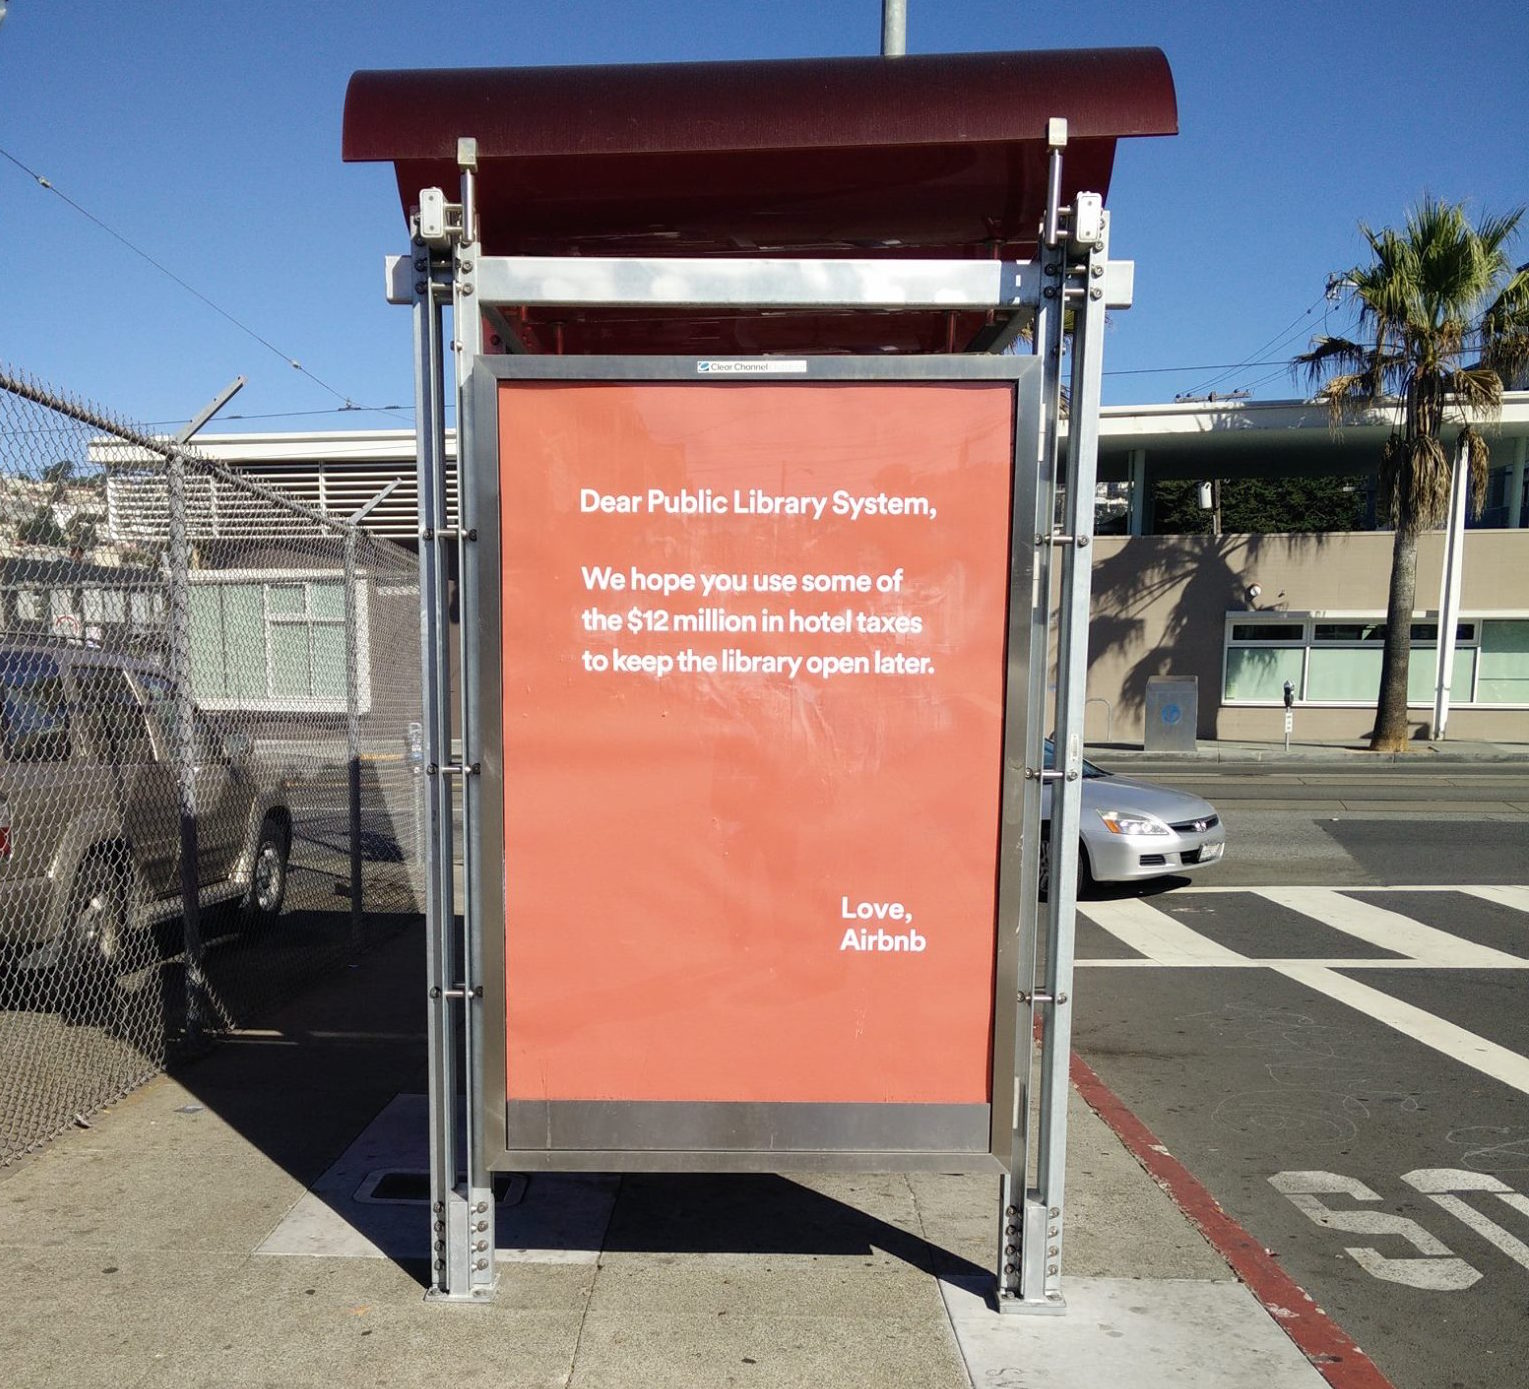 Social media crisis: Airbnb's ad campaign against taxes